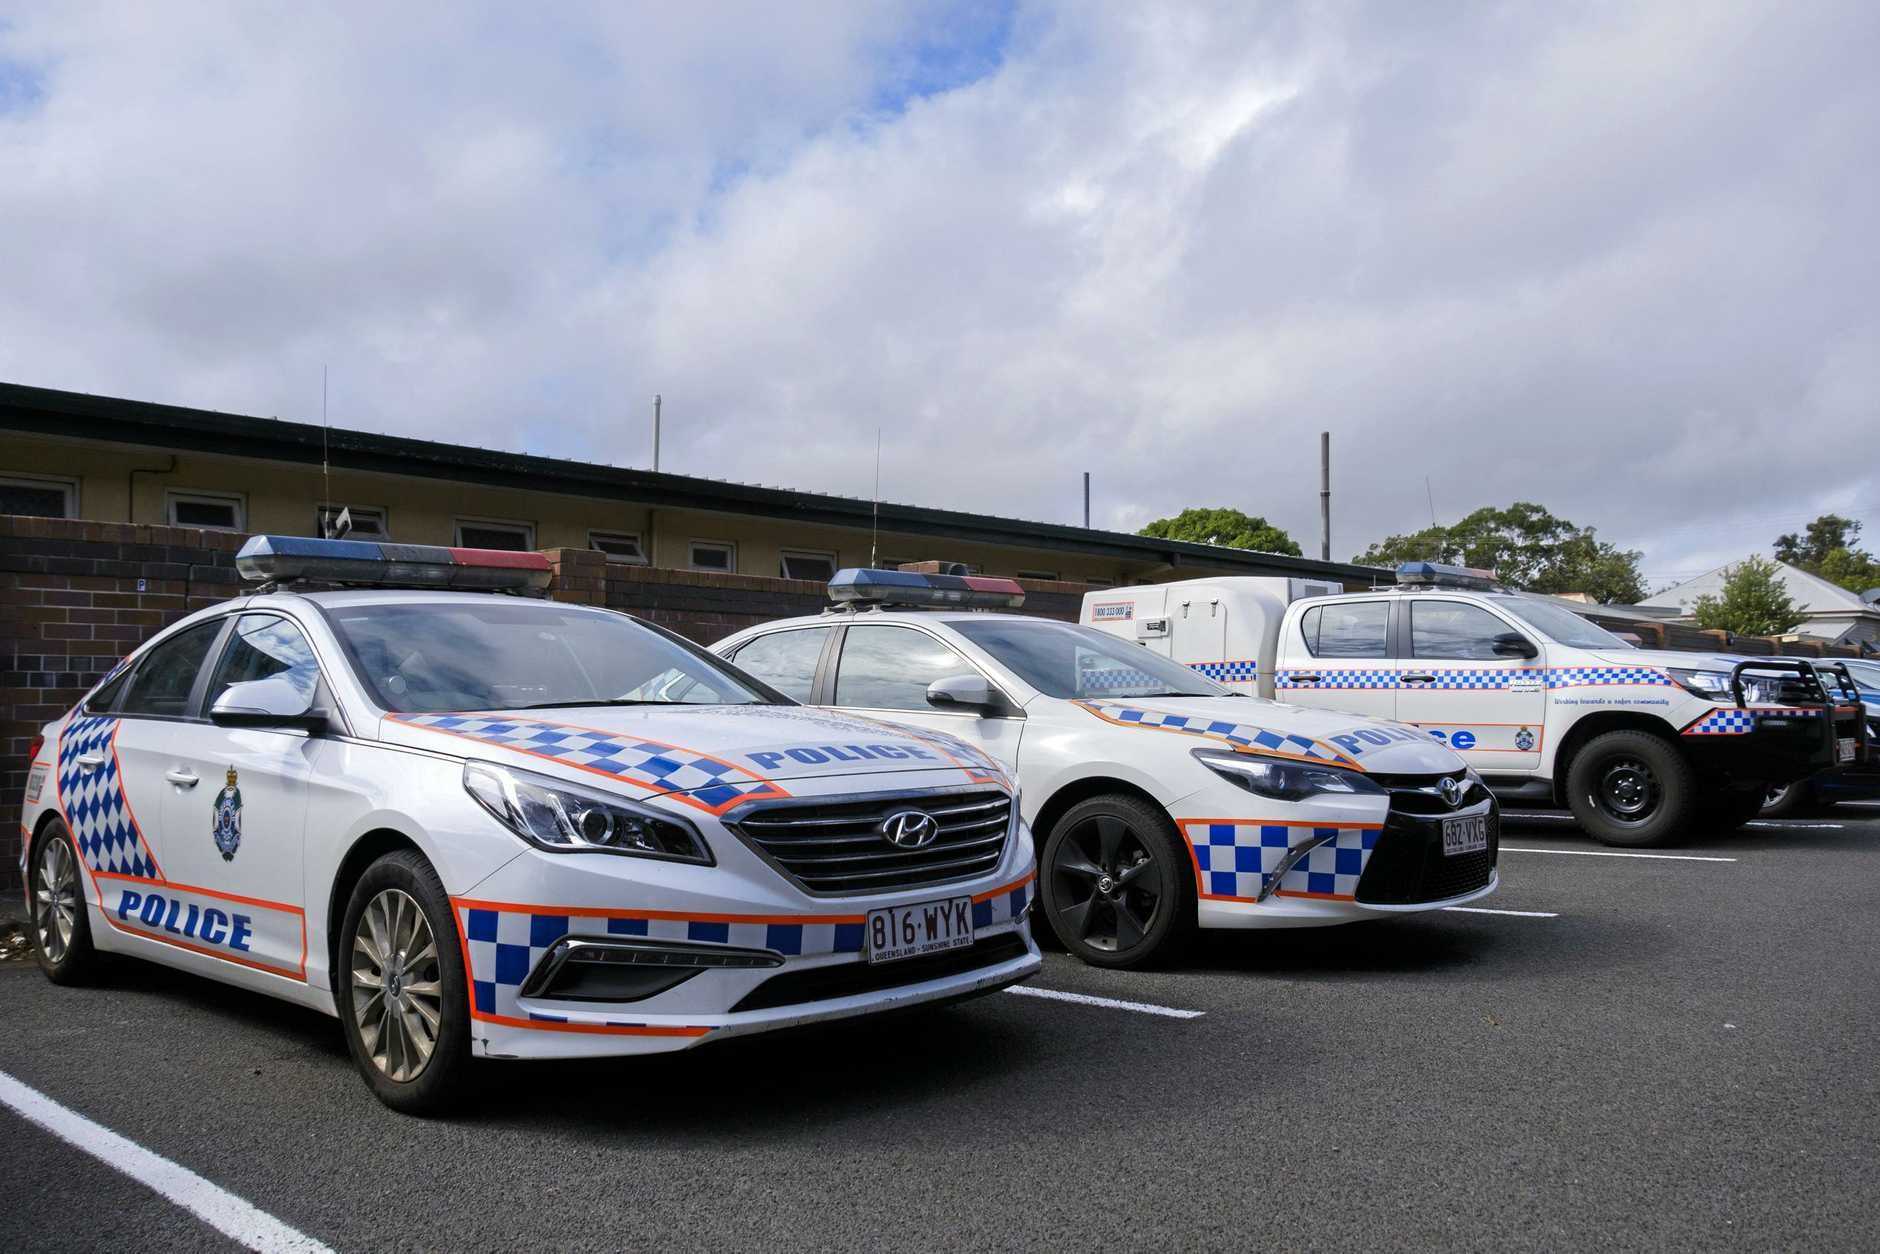 The driver, a 30-year-old Nerang man was placed under arrest.